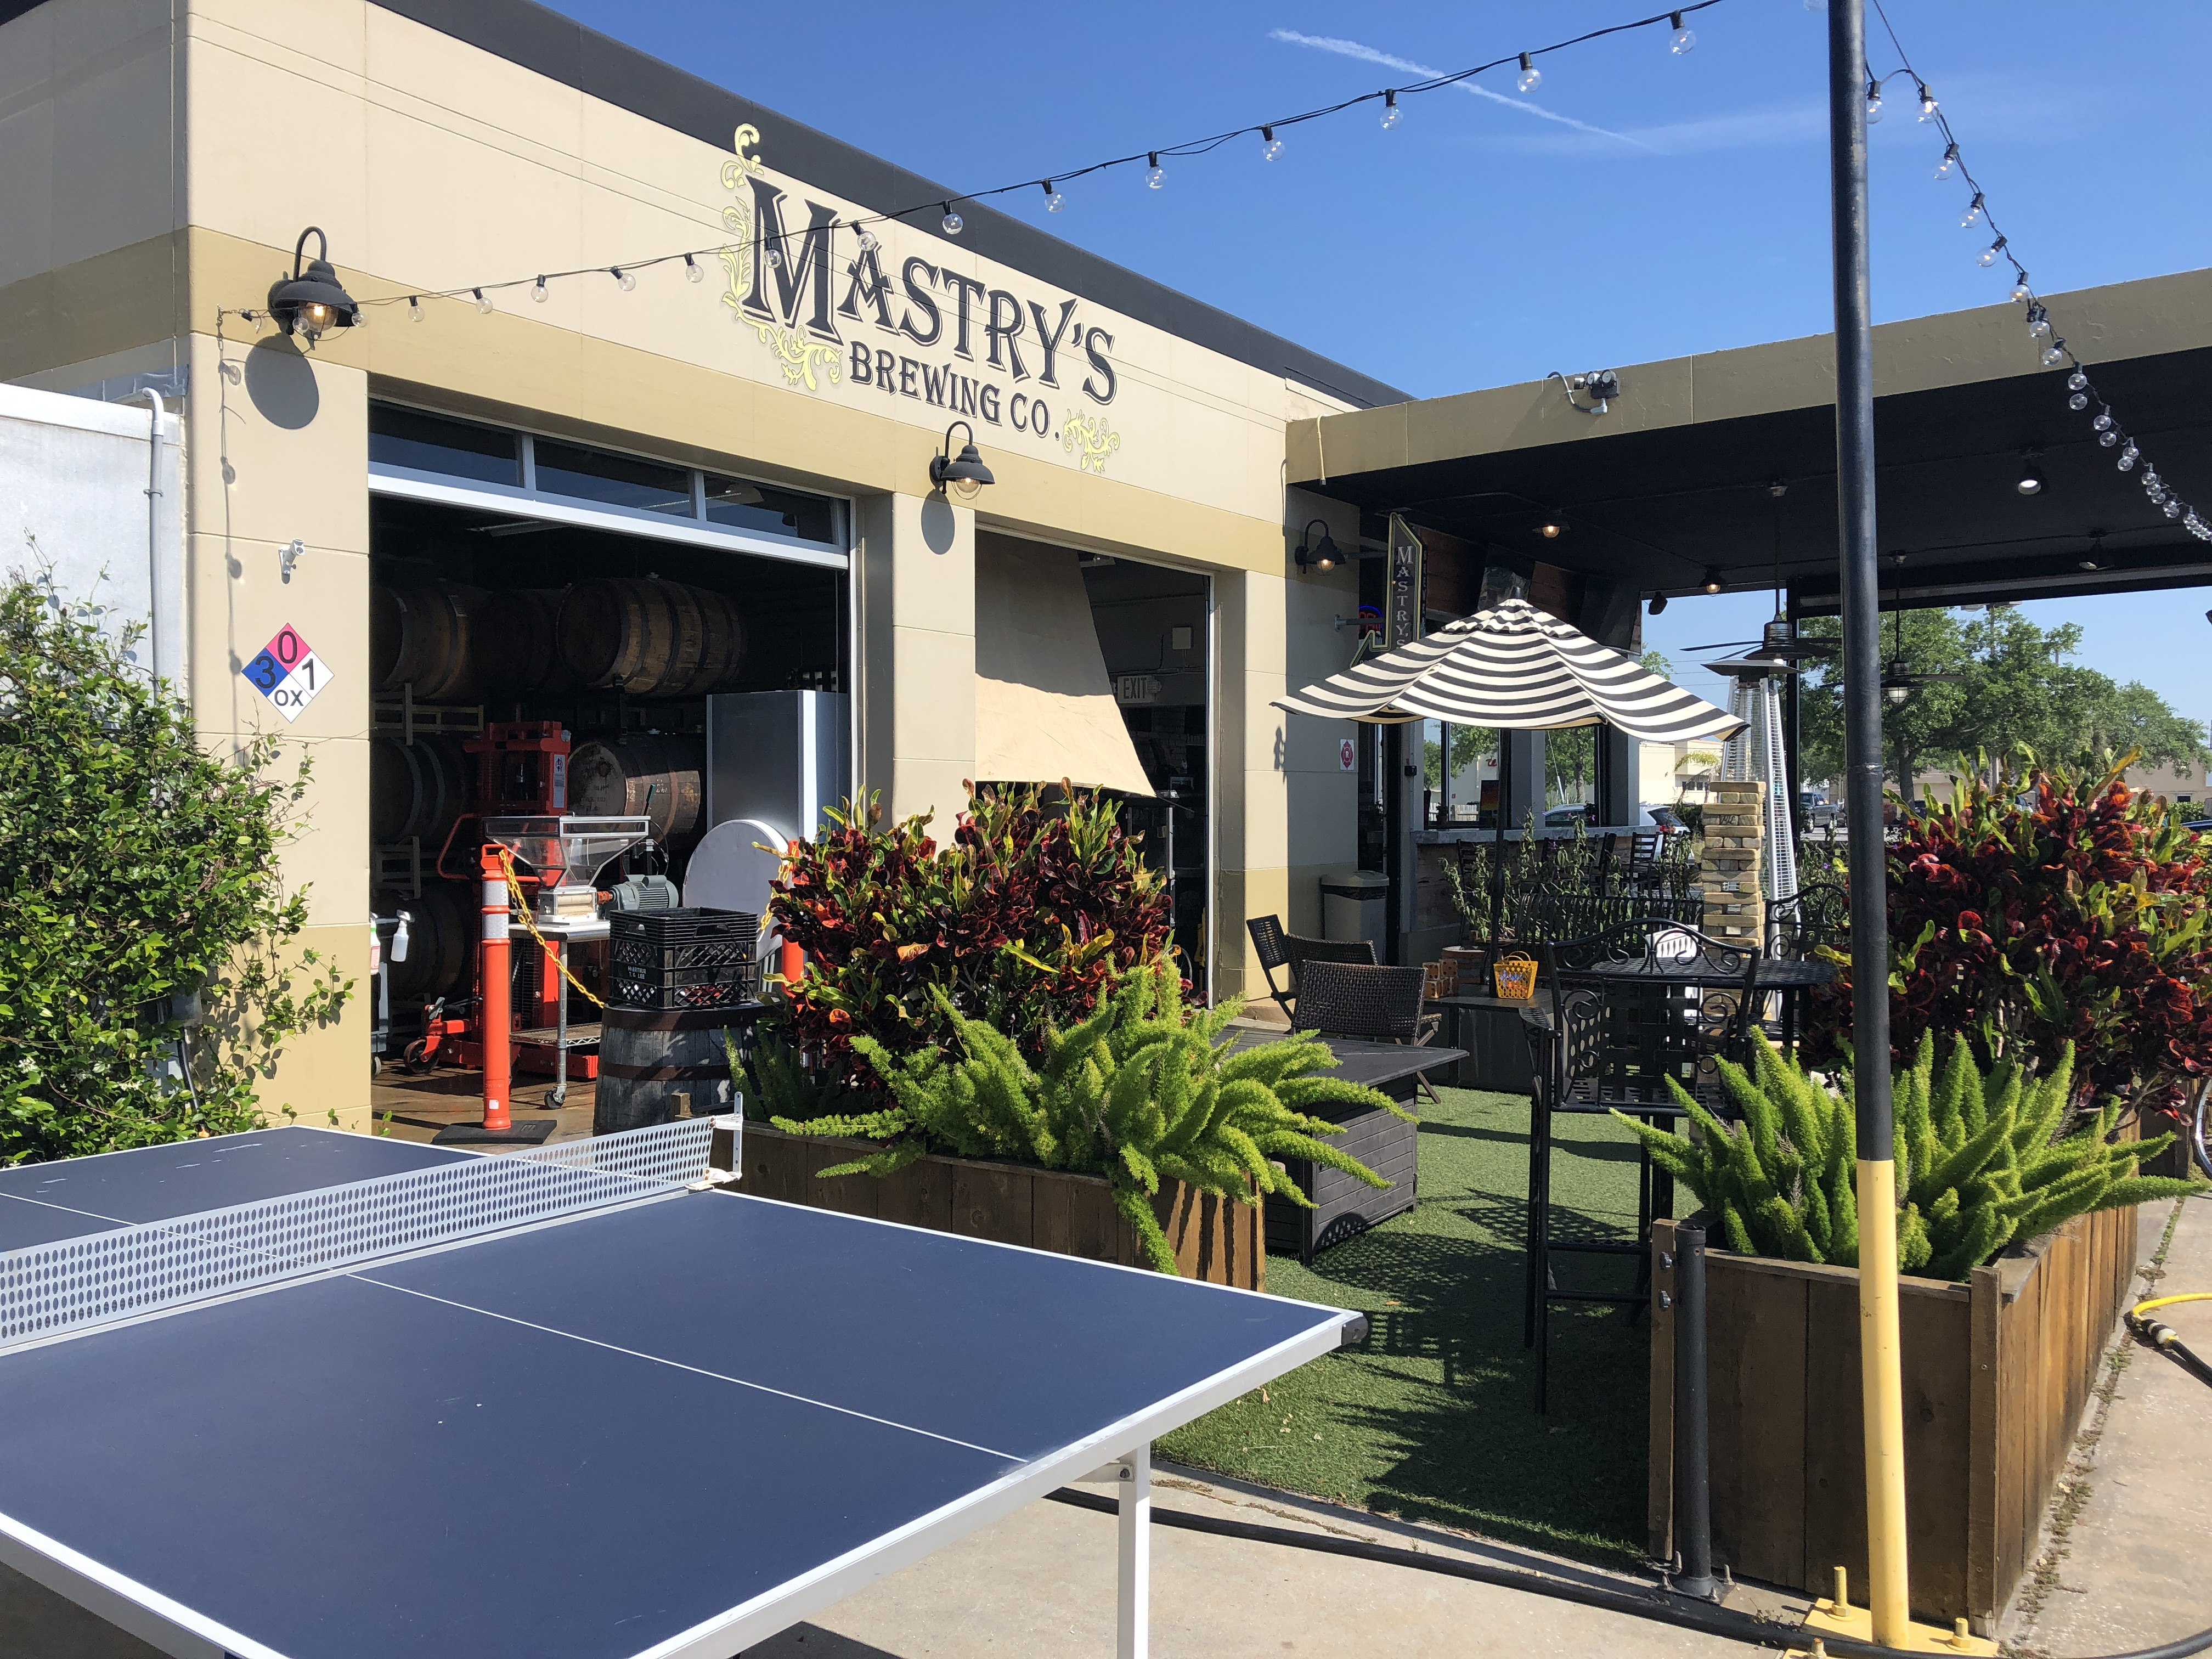 Outside of Mastry's with Ping Pong table